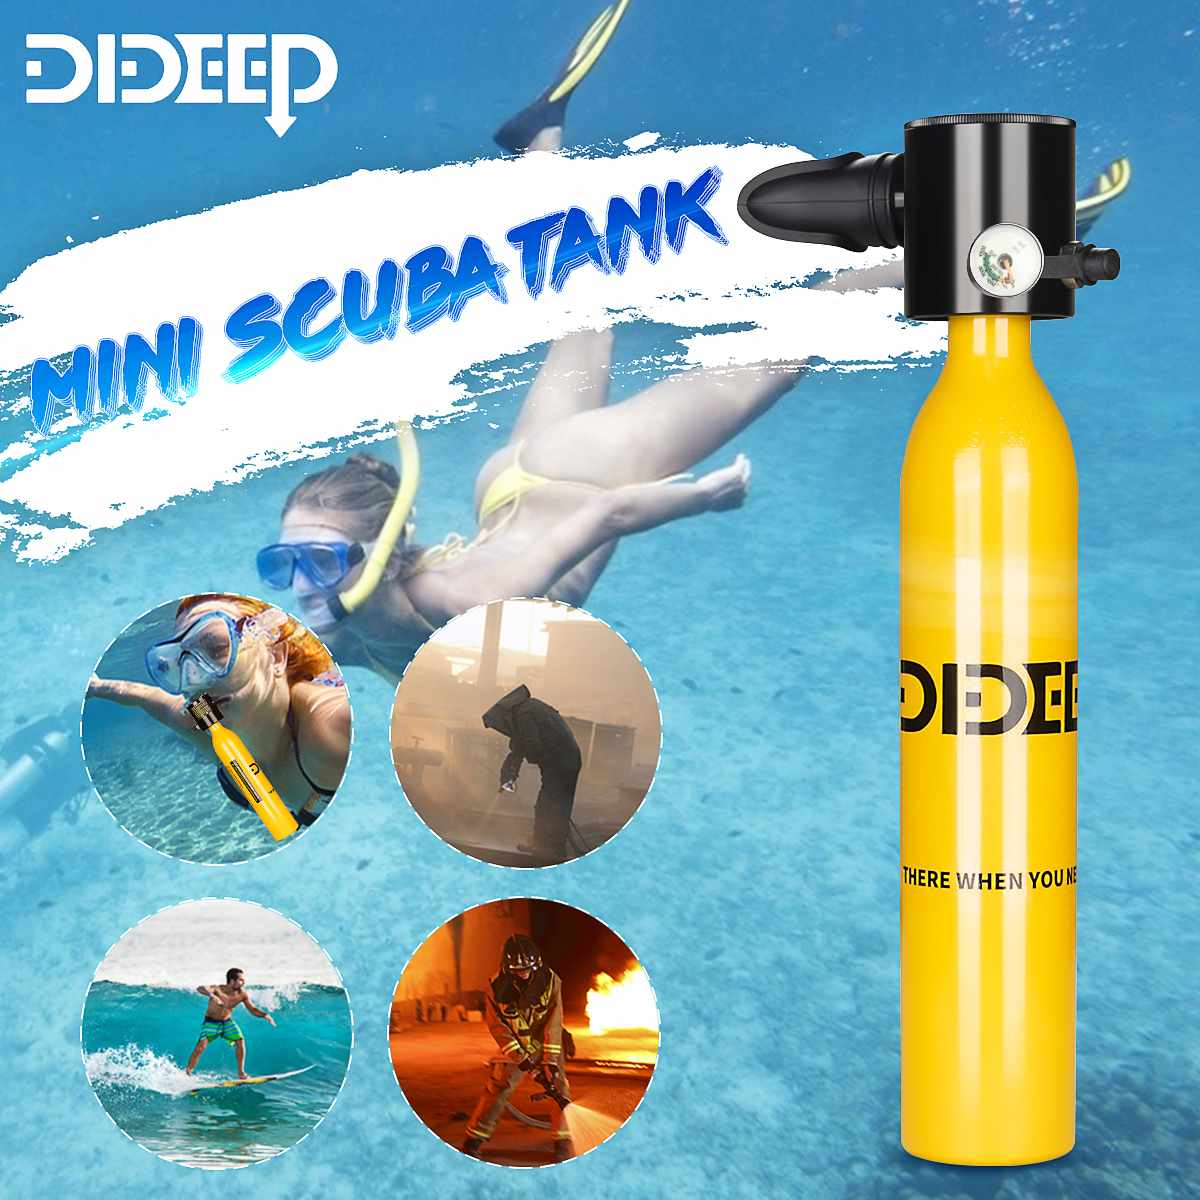 DIDEEP Scuba Oxygen Cylinder Diving System Underwater Breathing Swimming Equipment Mini Oxygen Bottle Tanks Air Tank New Version